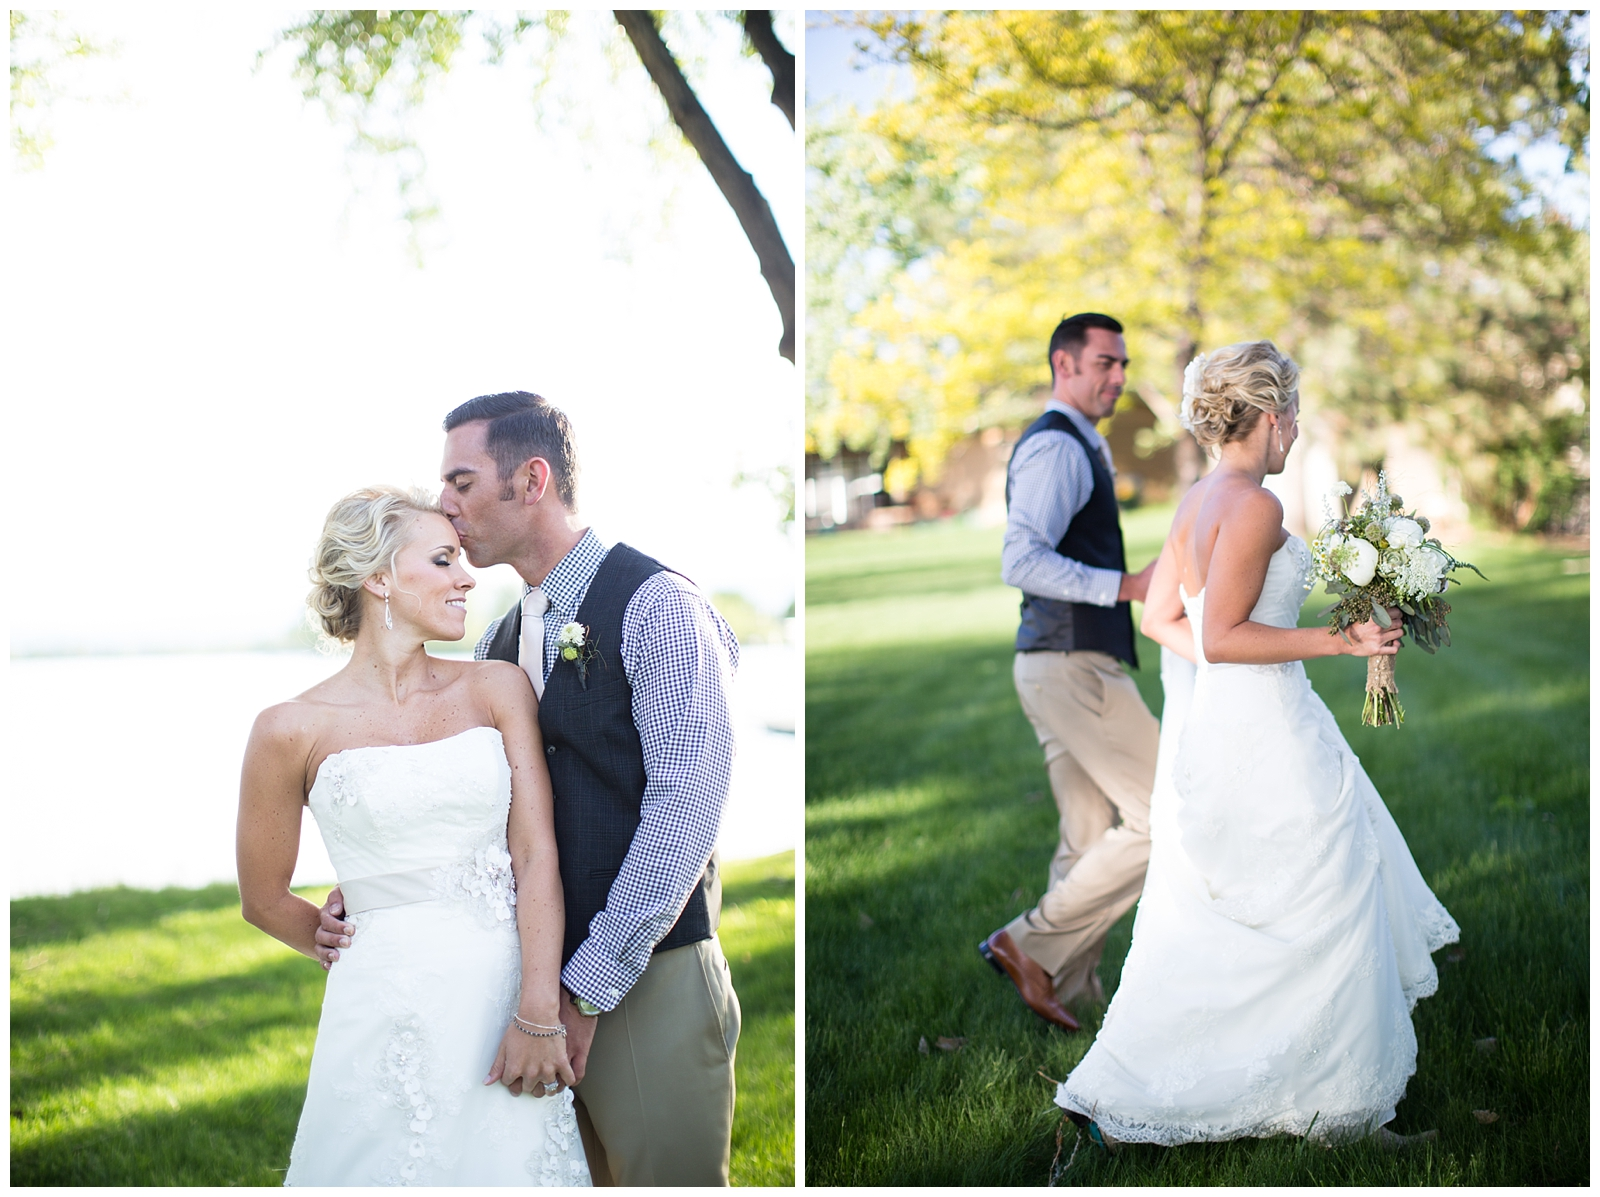 houstonweddingphotography_0245.jpg